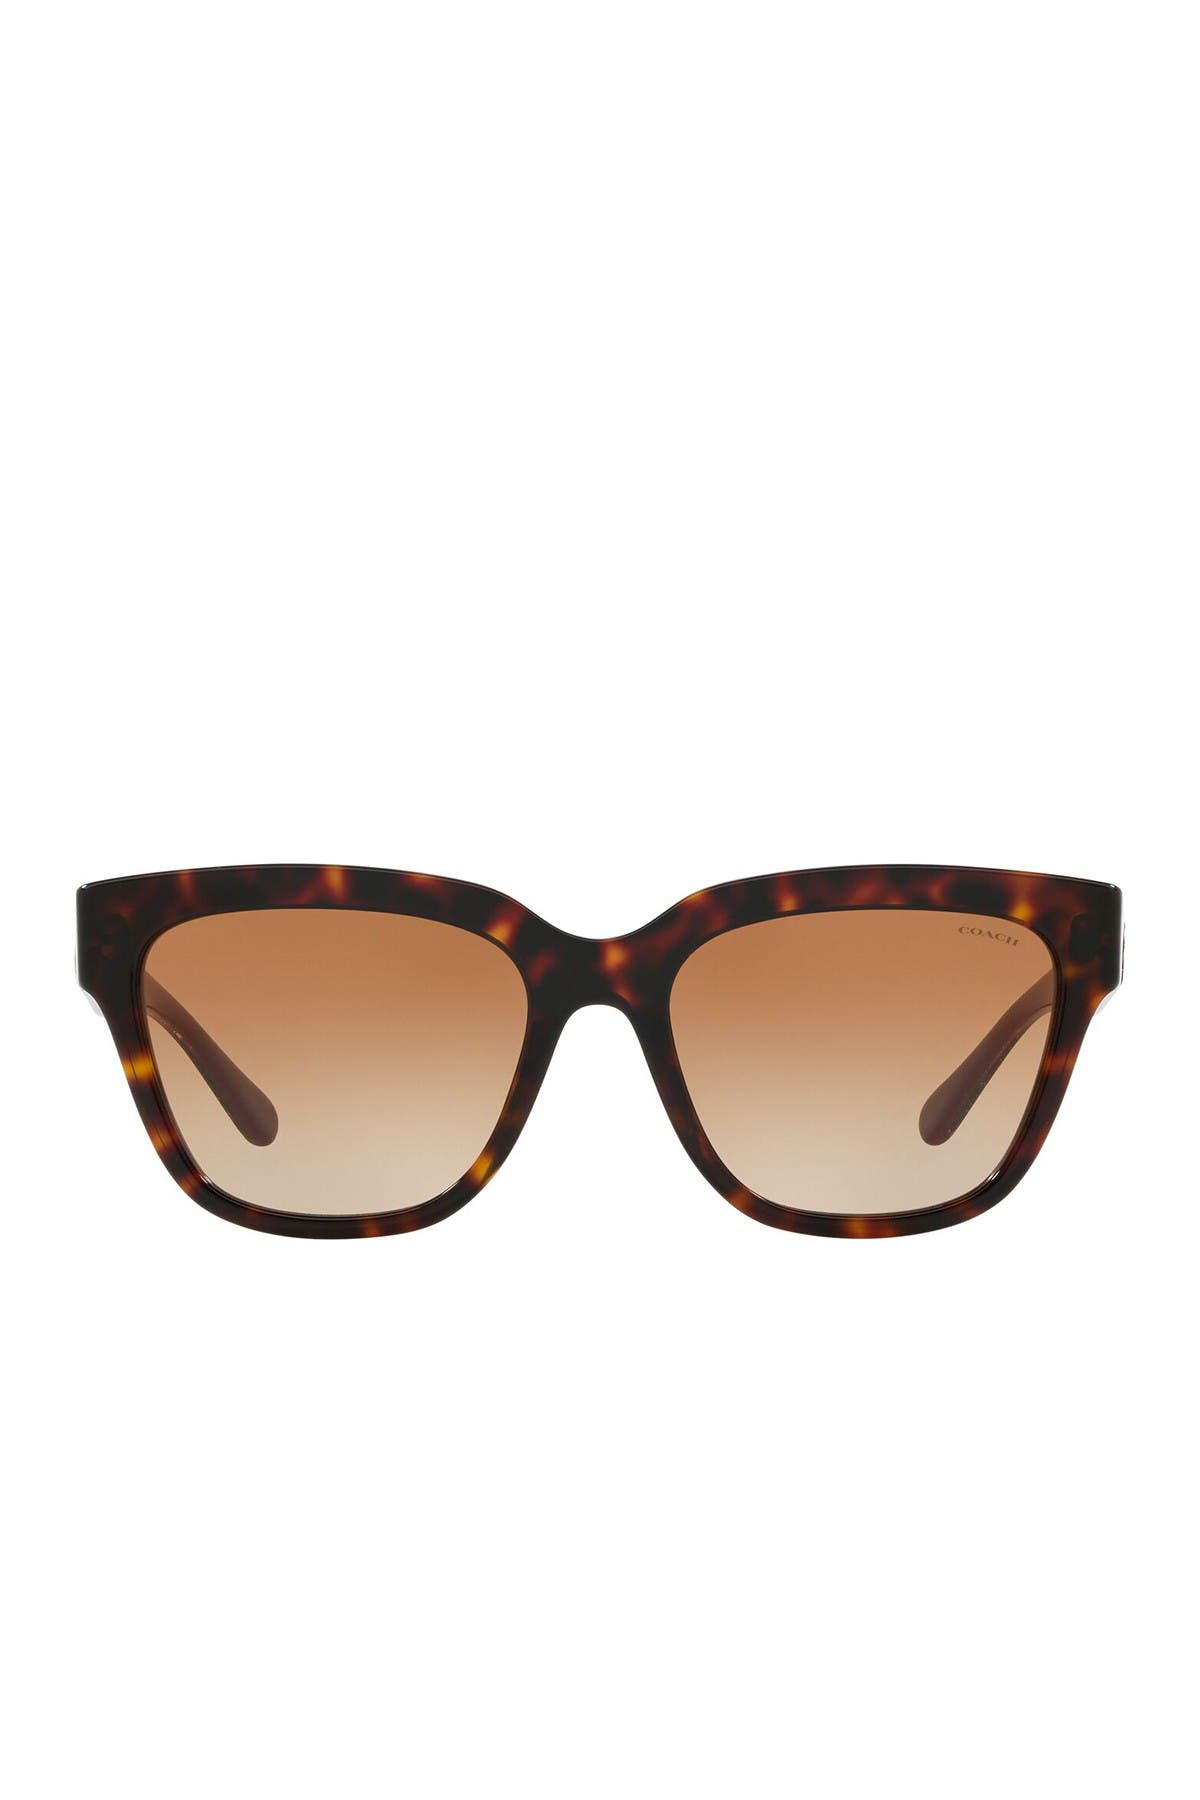 Image of Coach 55mm Square Sunglasses